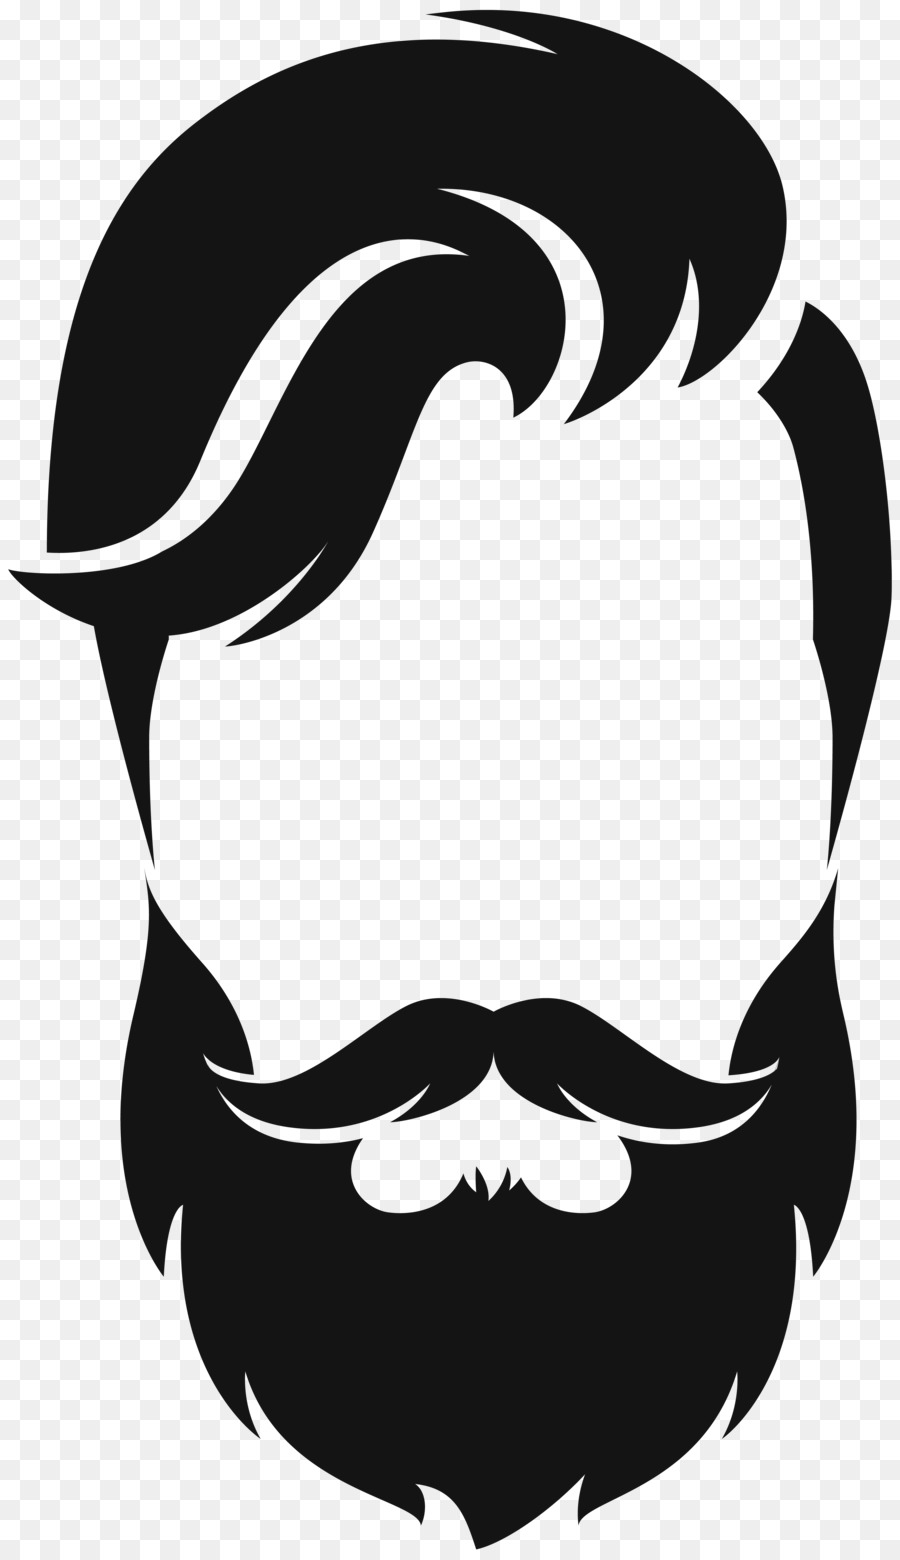 Beard clipart images image black and white library 6+ Beard Clipart | ClipartLook image black and white library